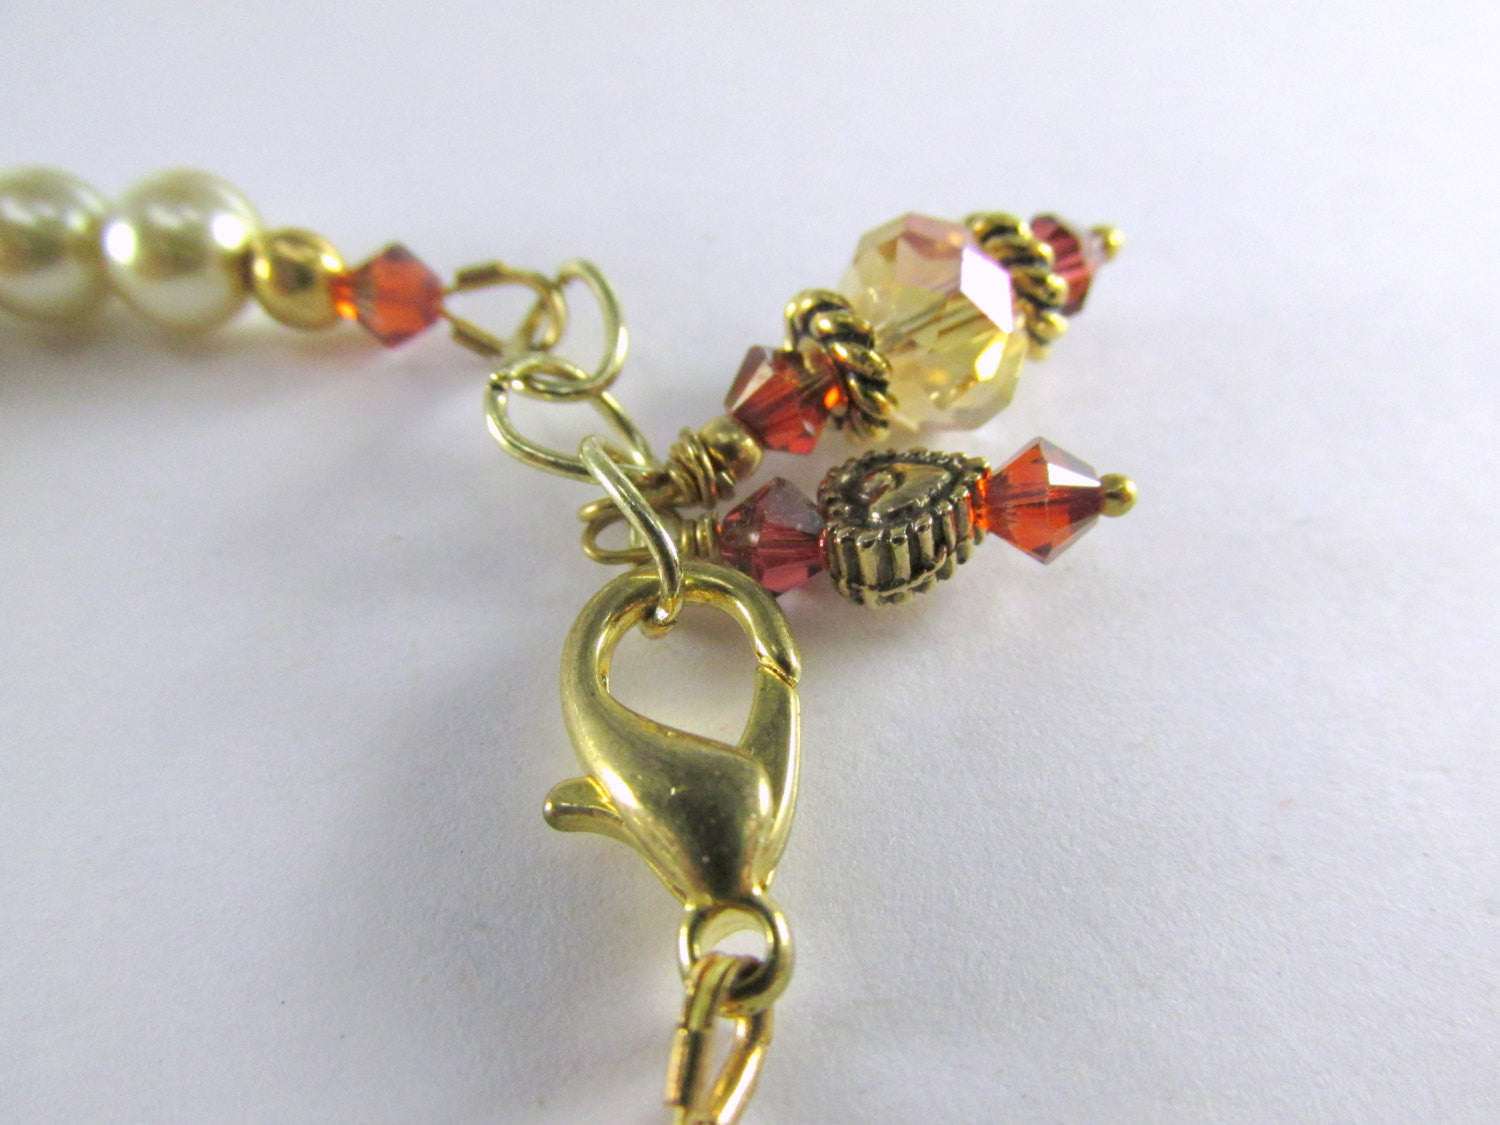 Child Size Very Small 6 Inch Bracelet in Light Gold Pearls and Swarovski Dark Red Magma Crystals - Odyssey Creations